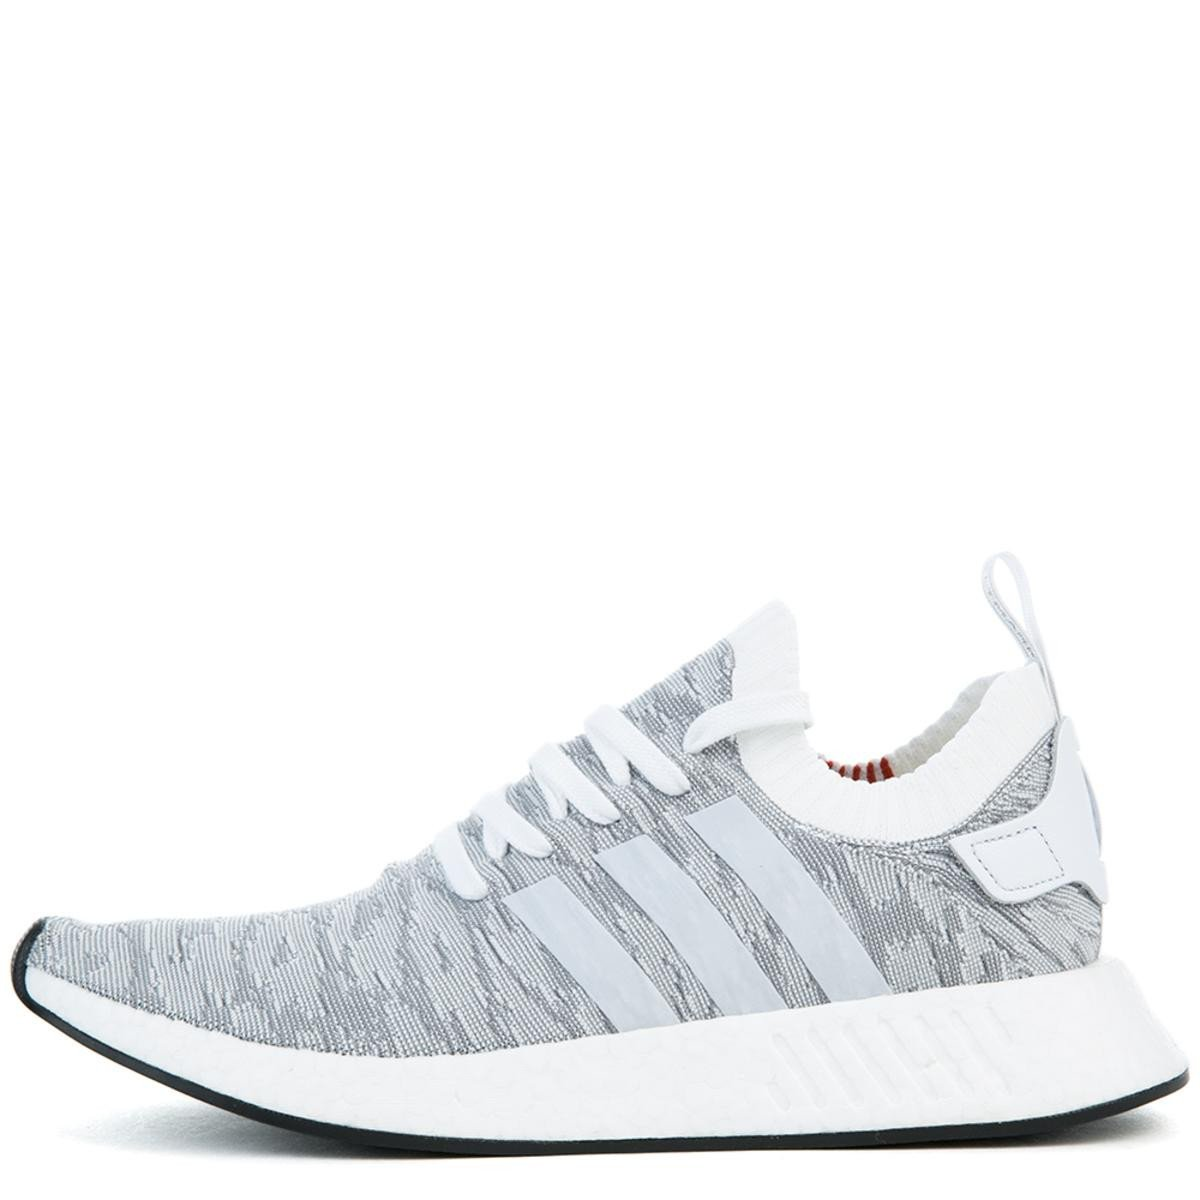 The NMD_R2 PK in White and Coral Black